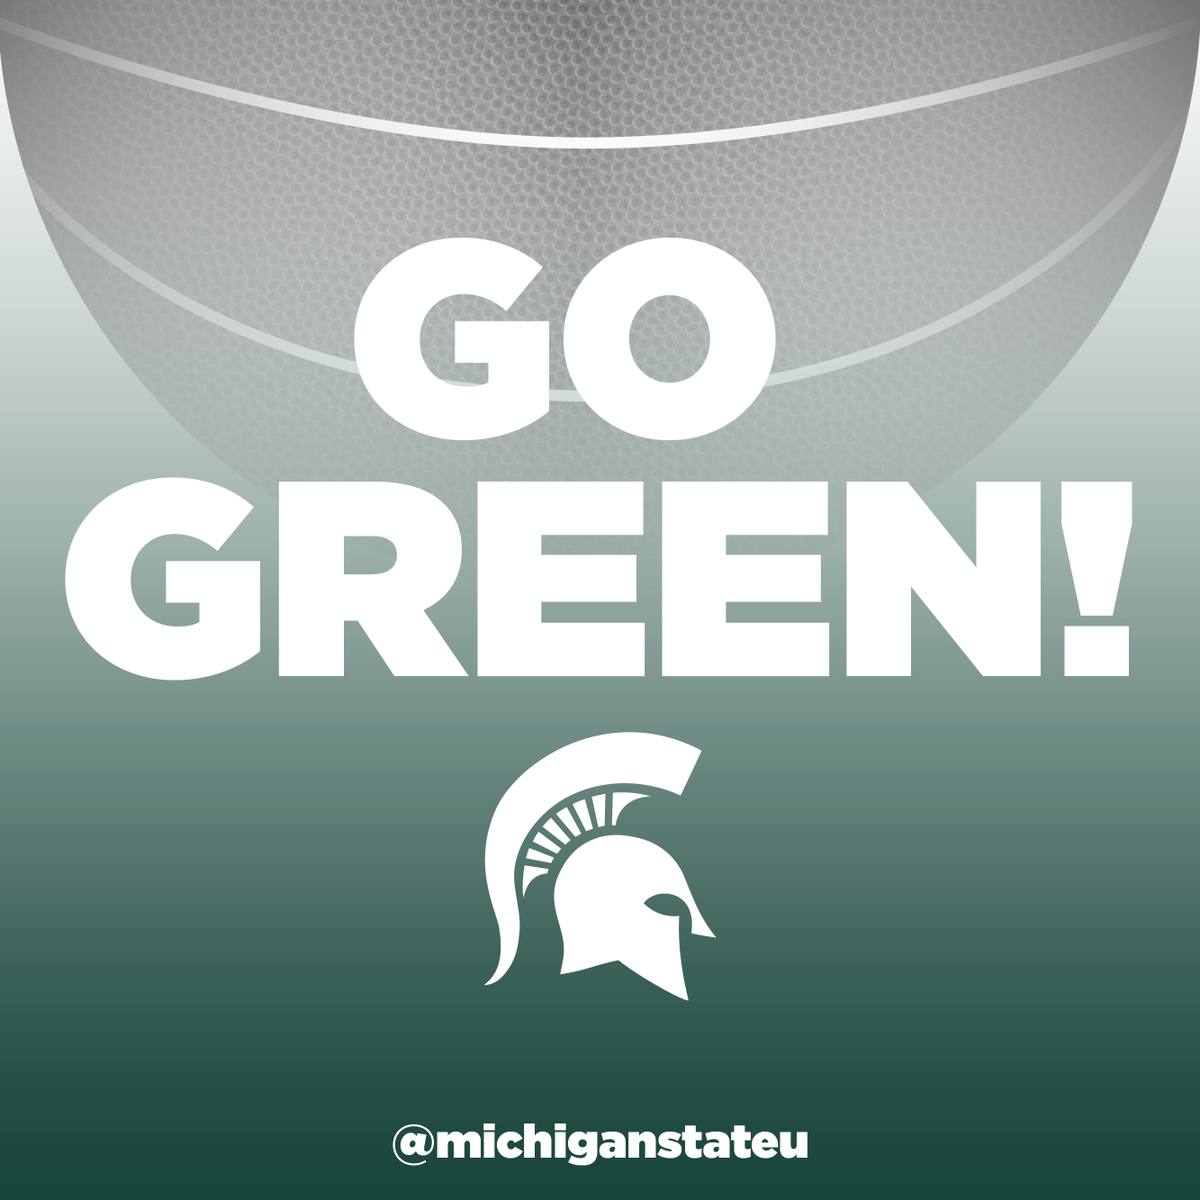 Sweet 16! @MSU_Basketball 60, Virginia 54. http://t.co/uDFQY1uOhP